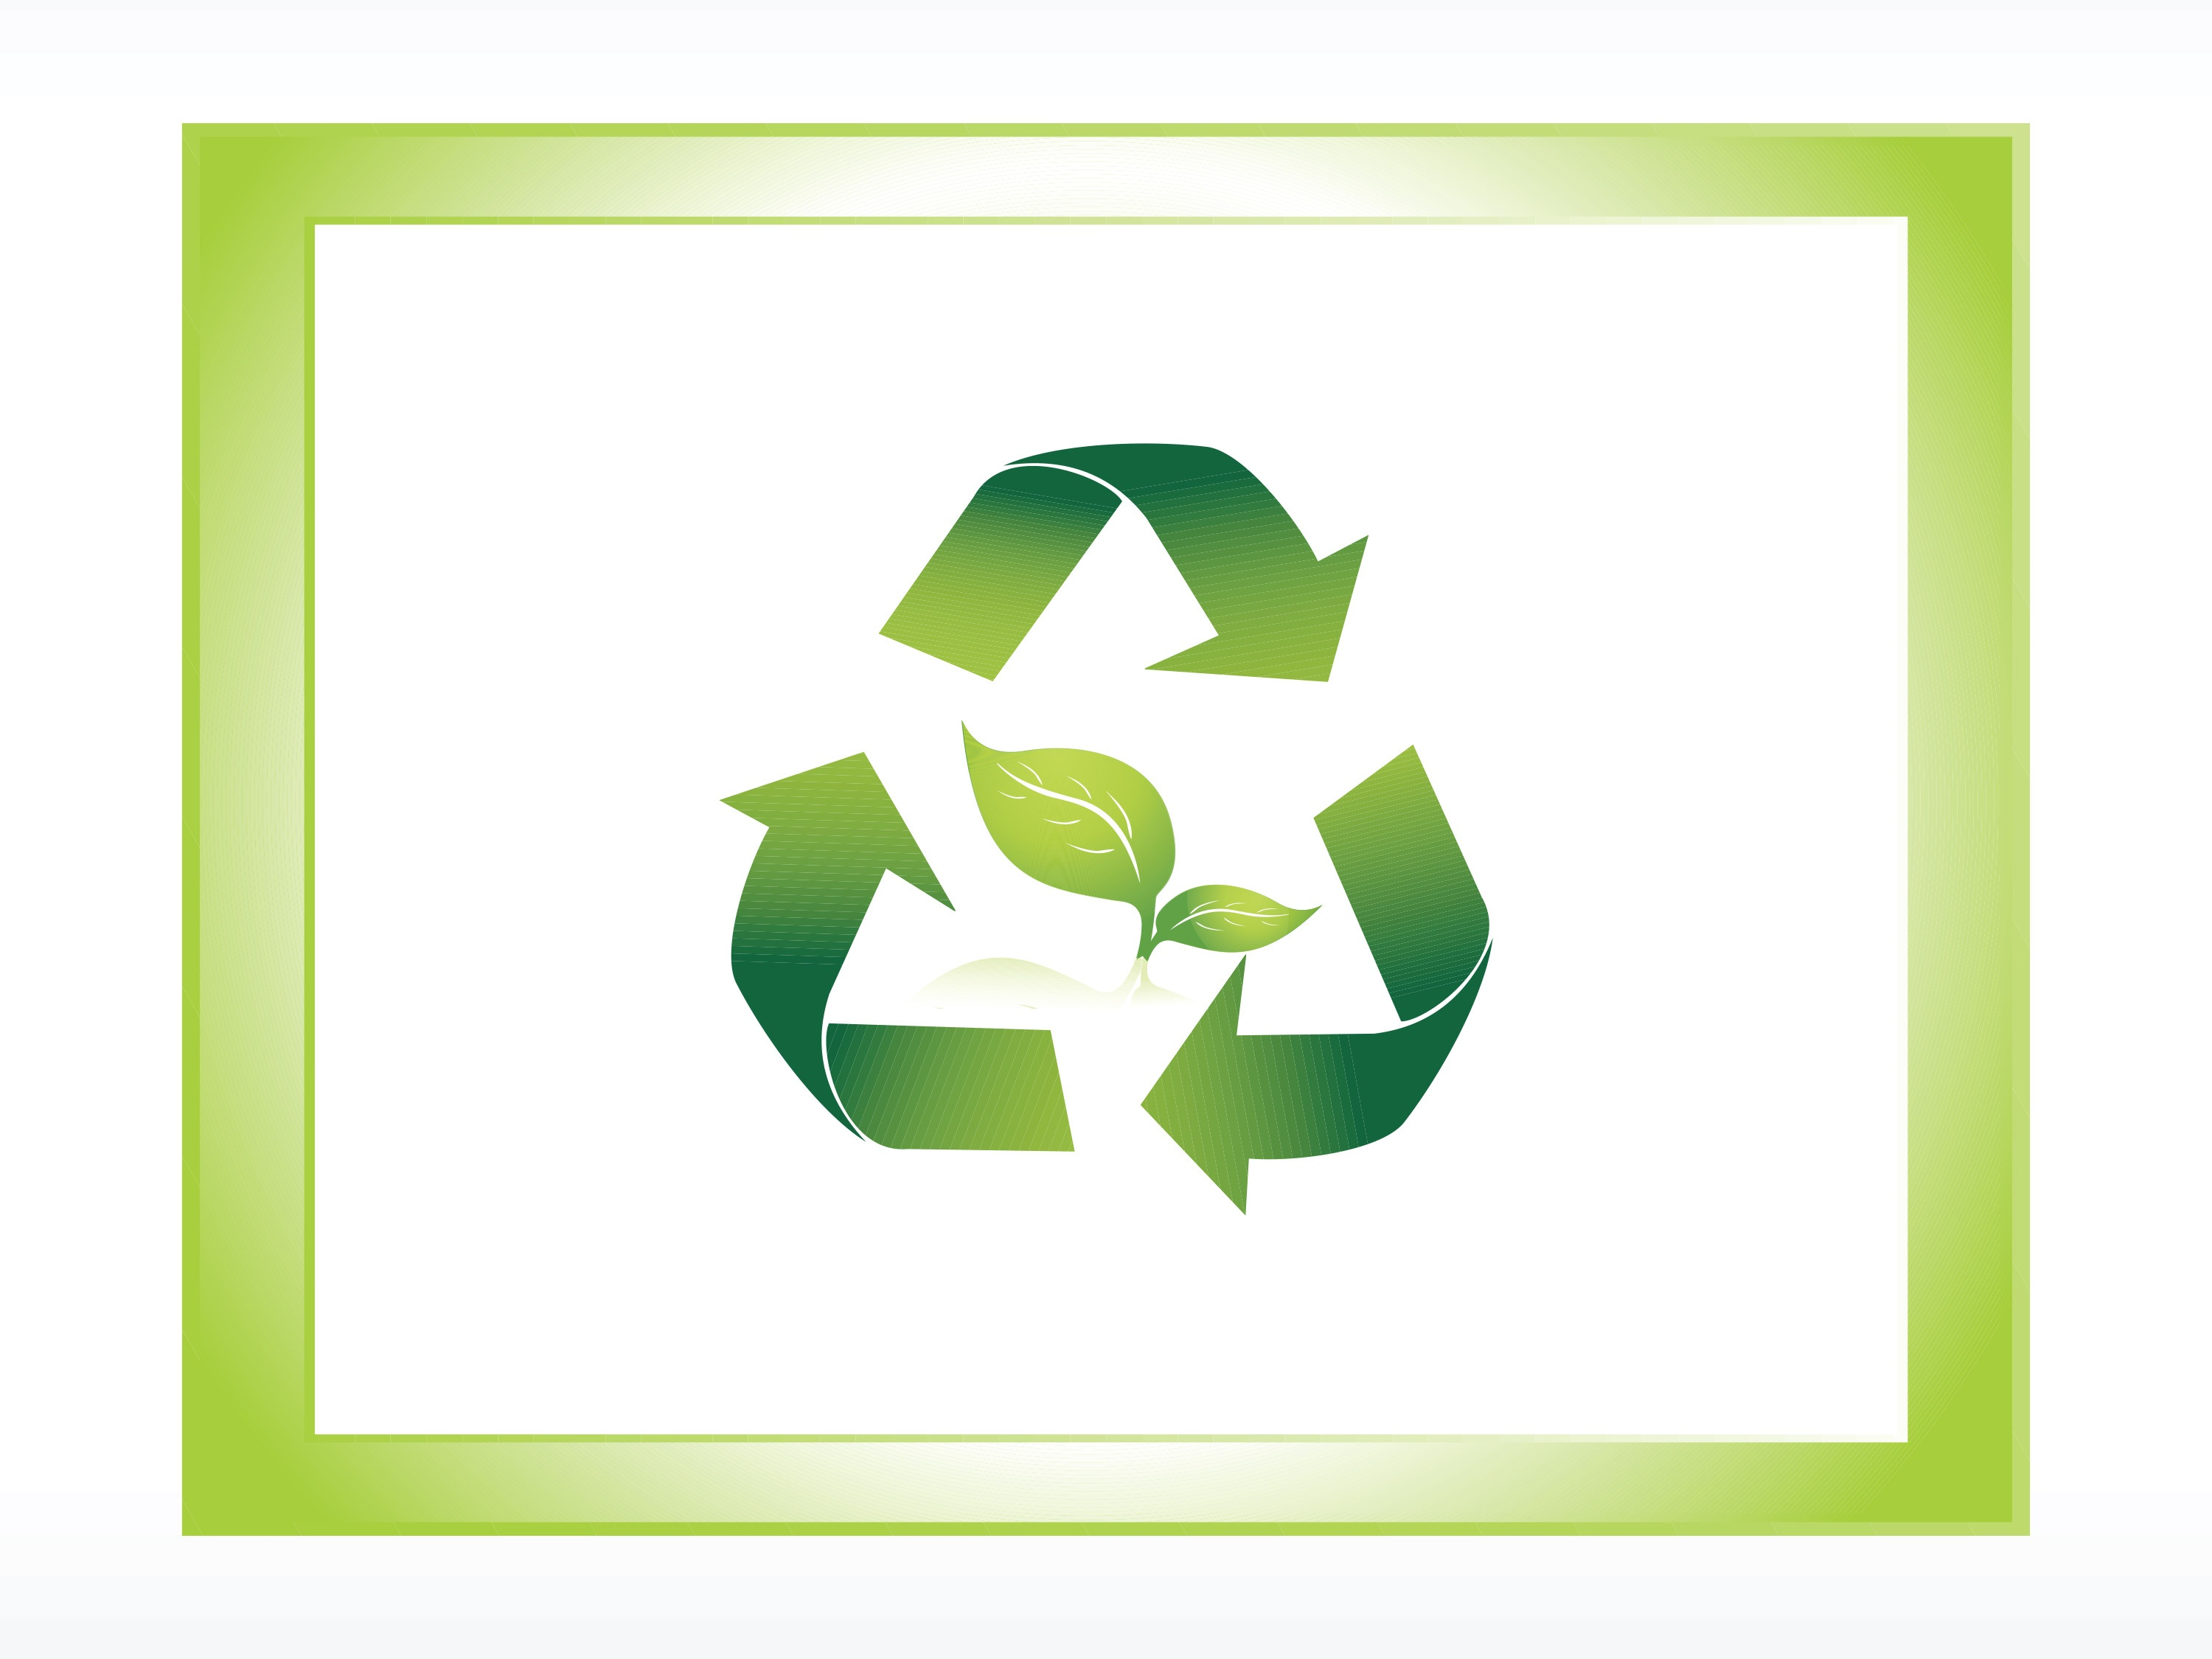 excluded recyclable materials